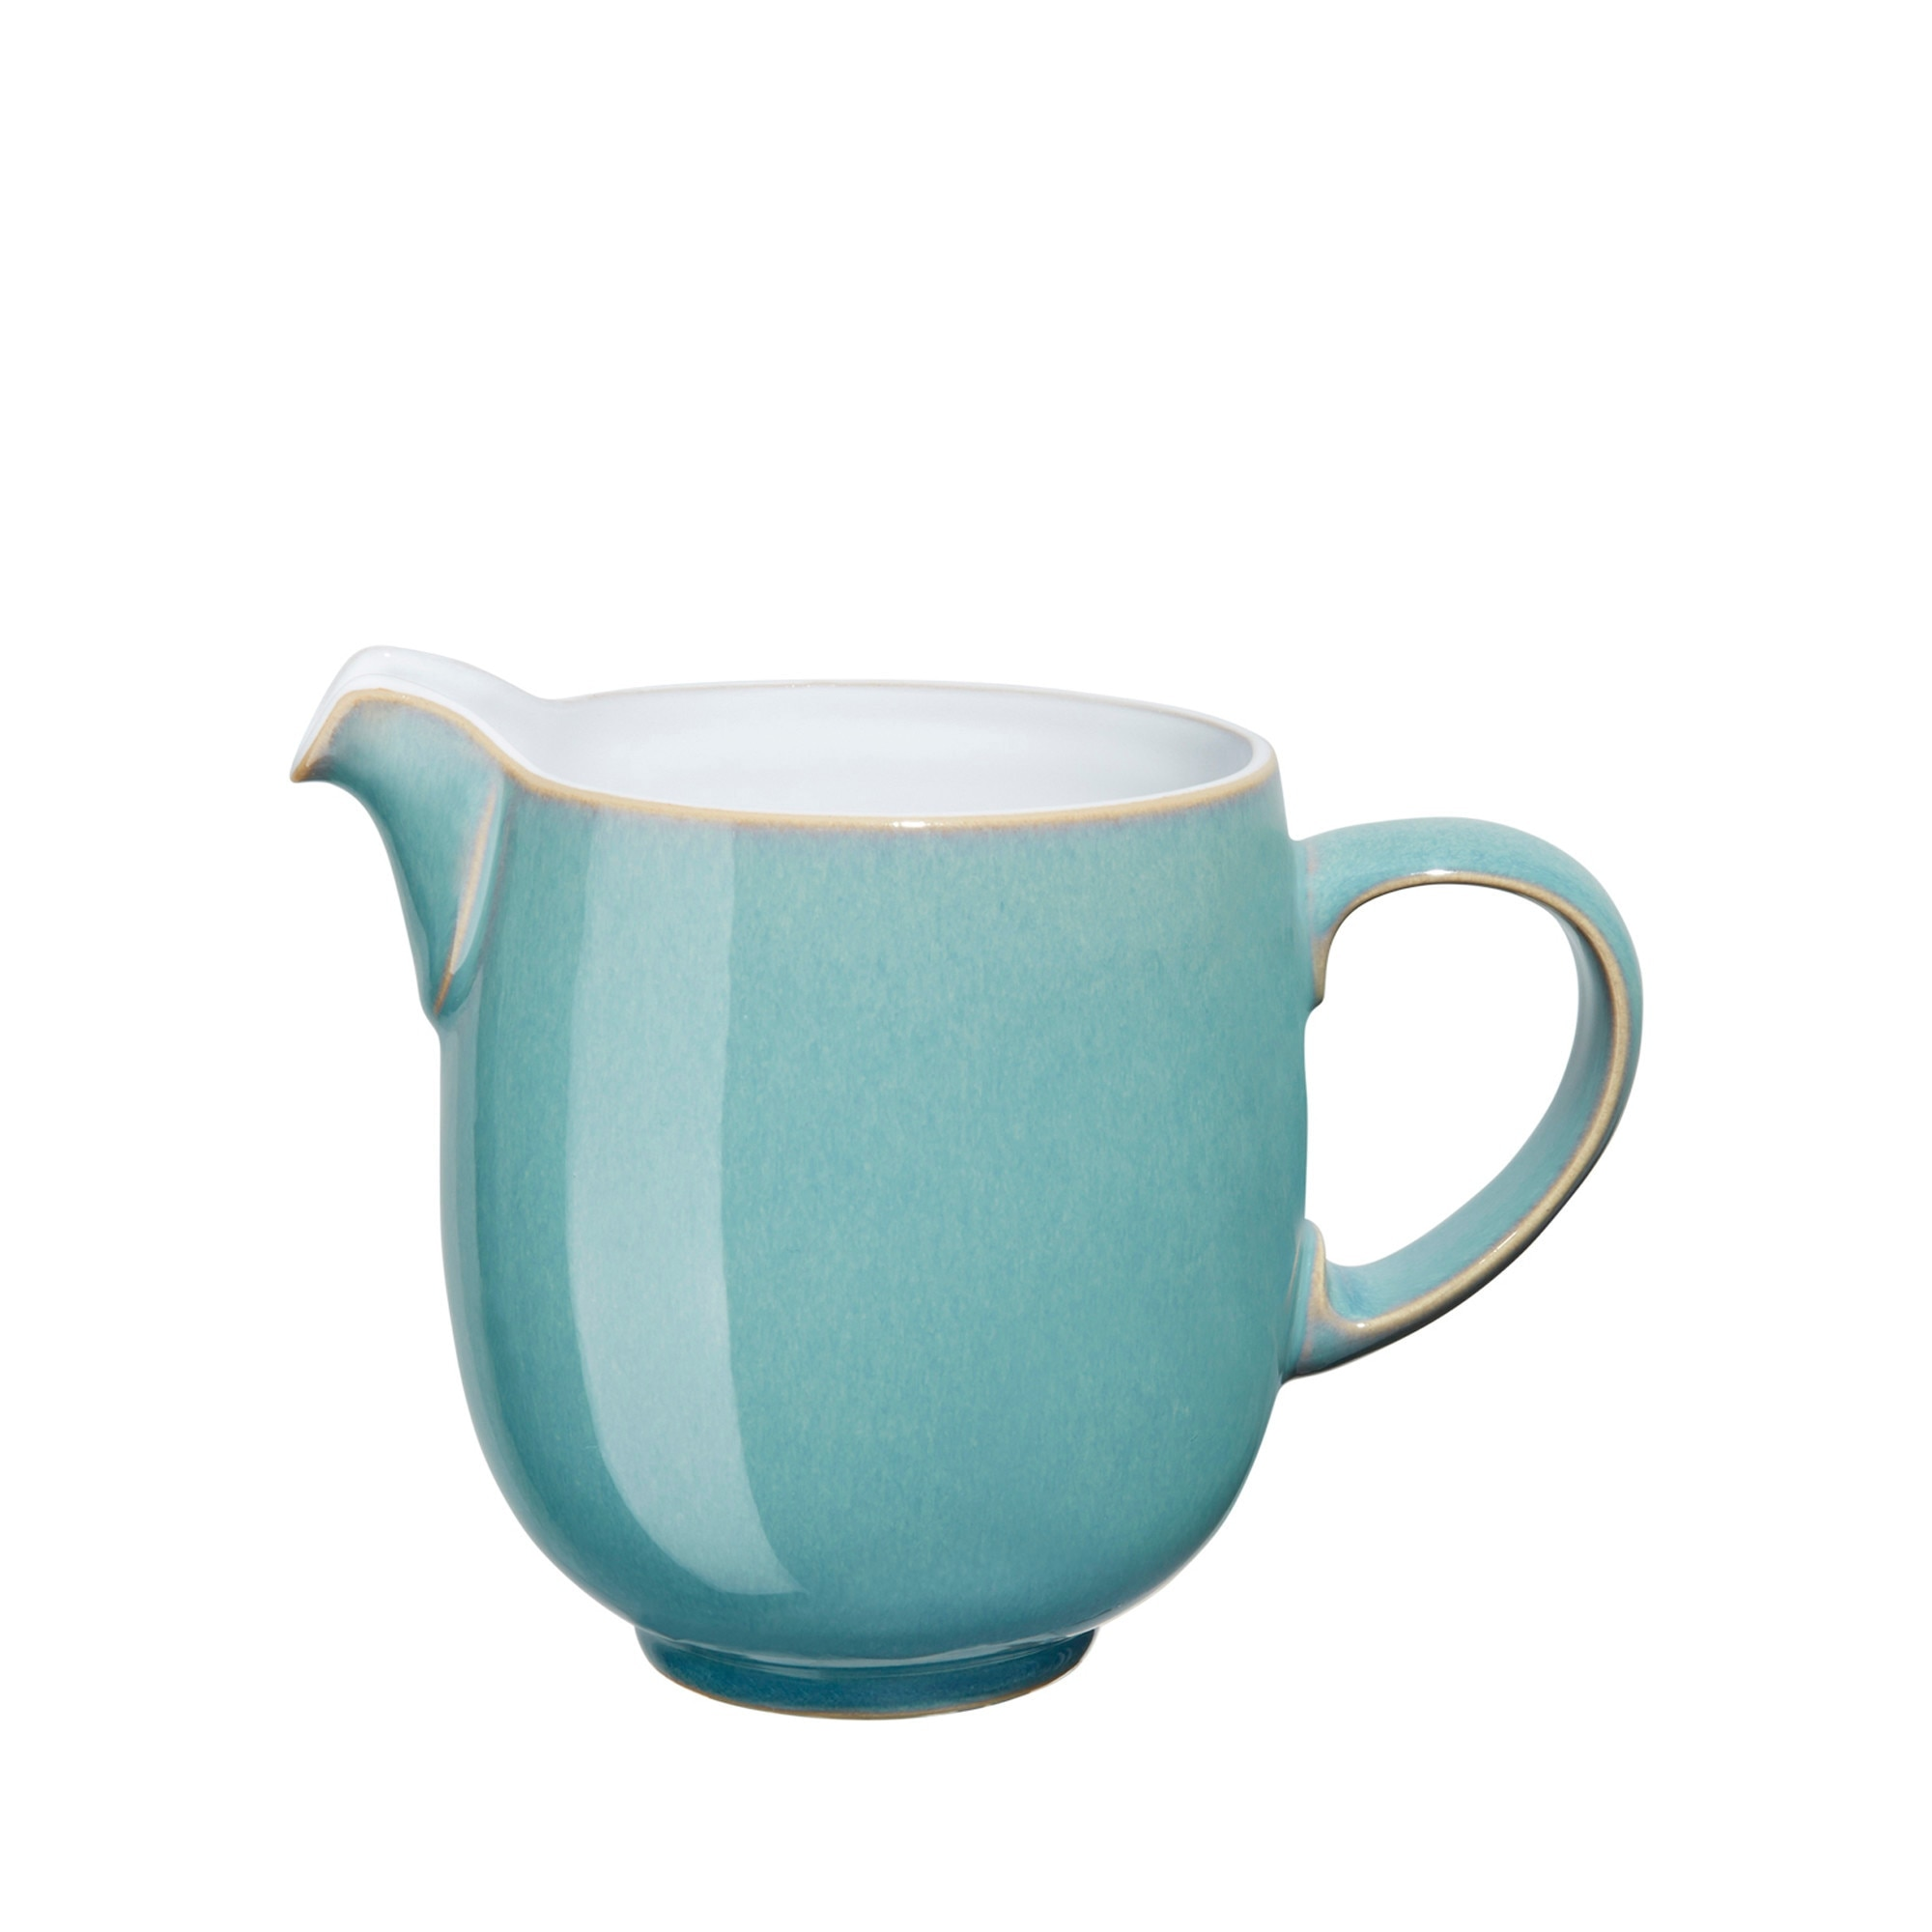 Compare prices for Denby Azure Large Jug